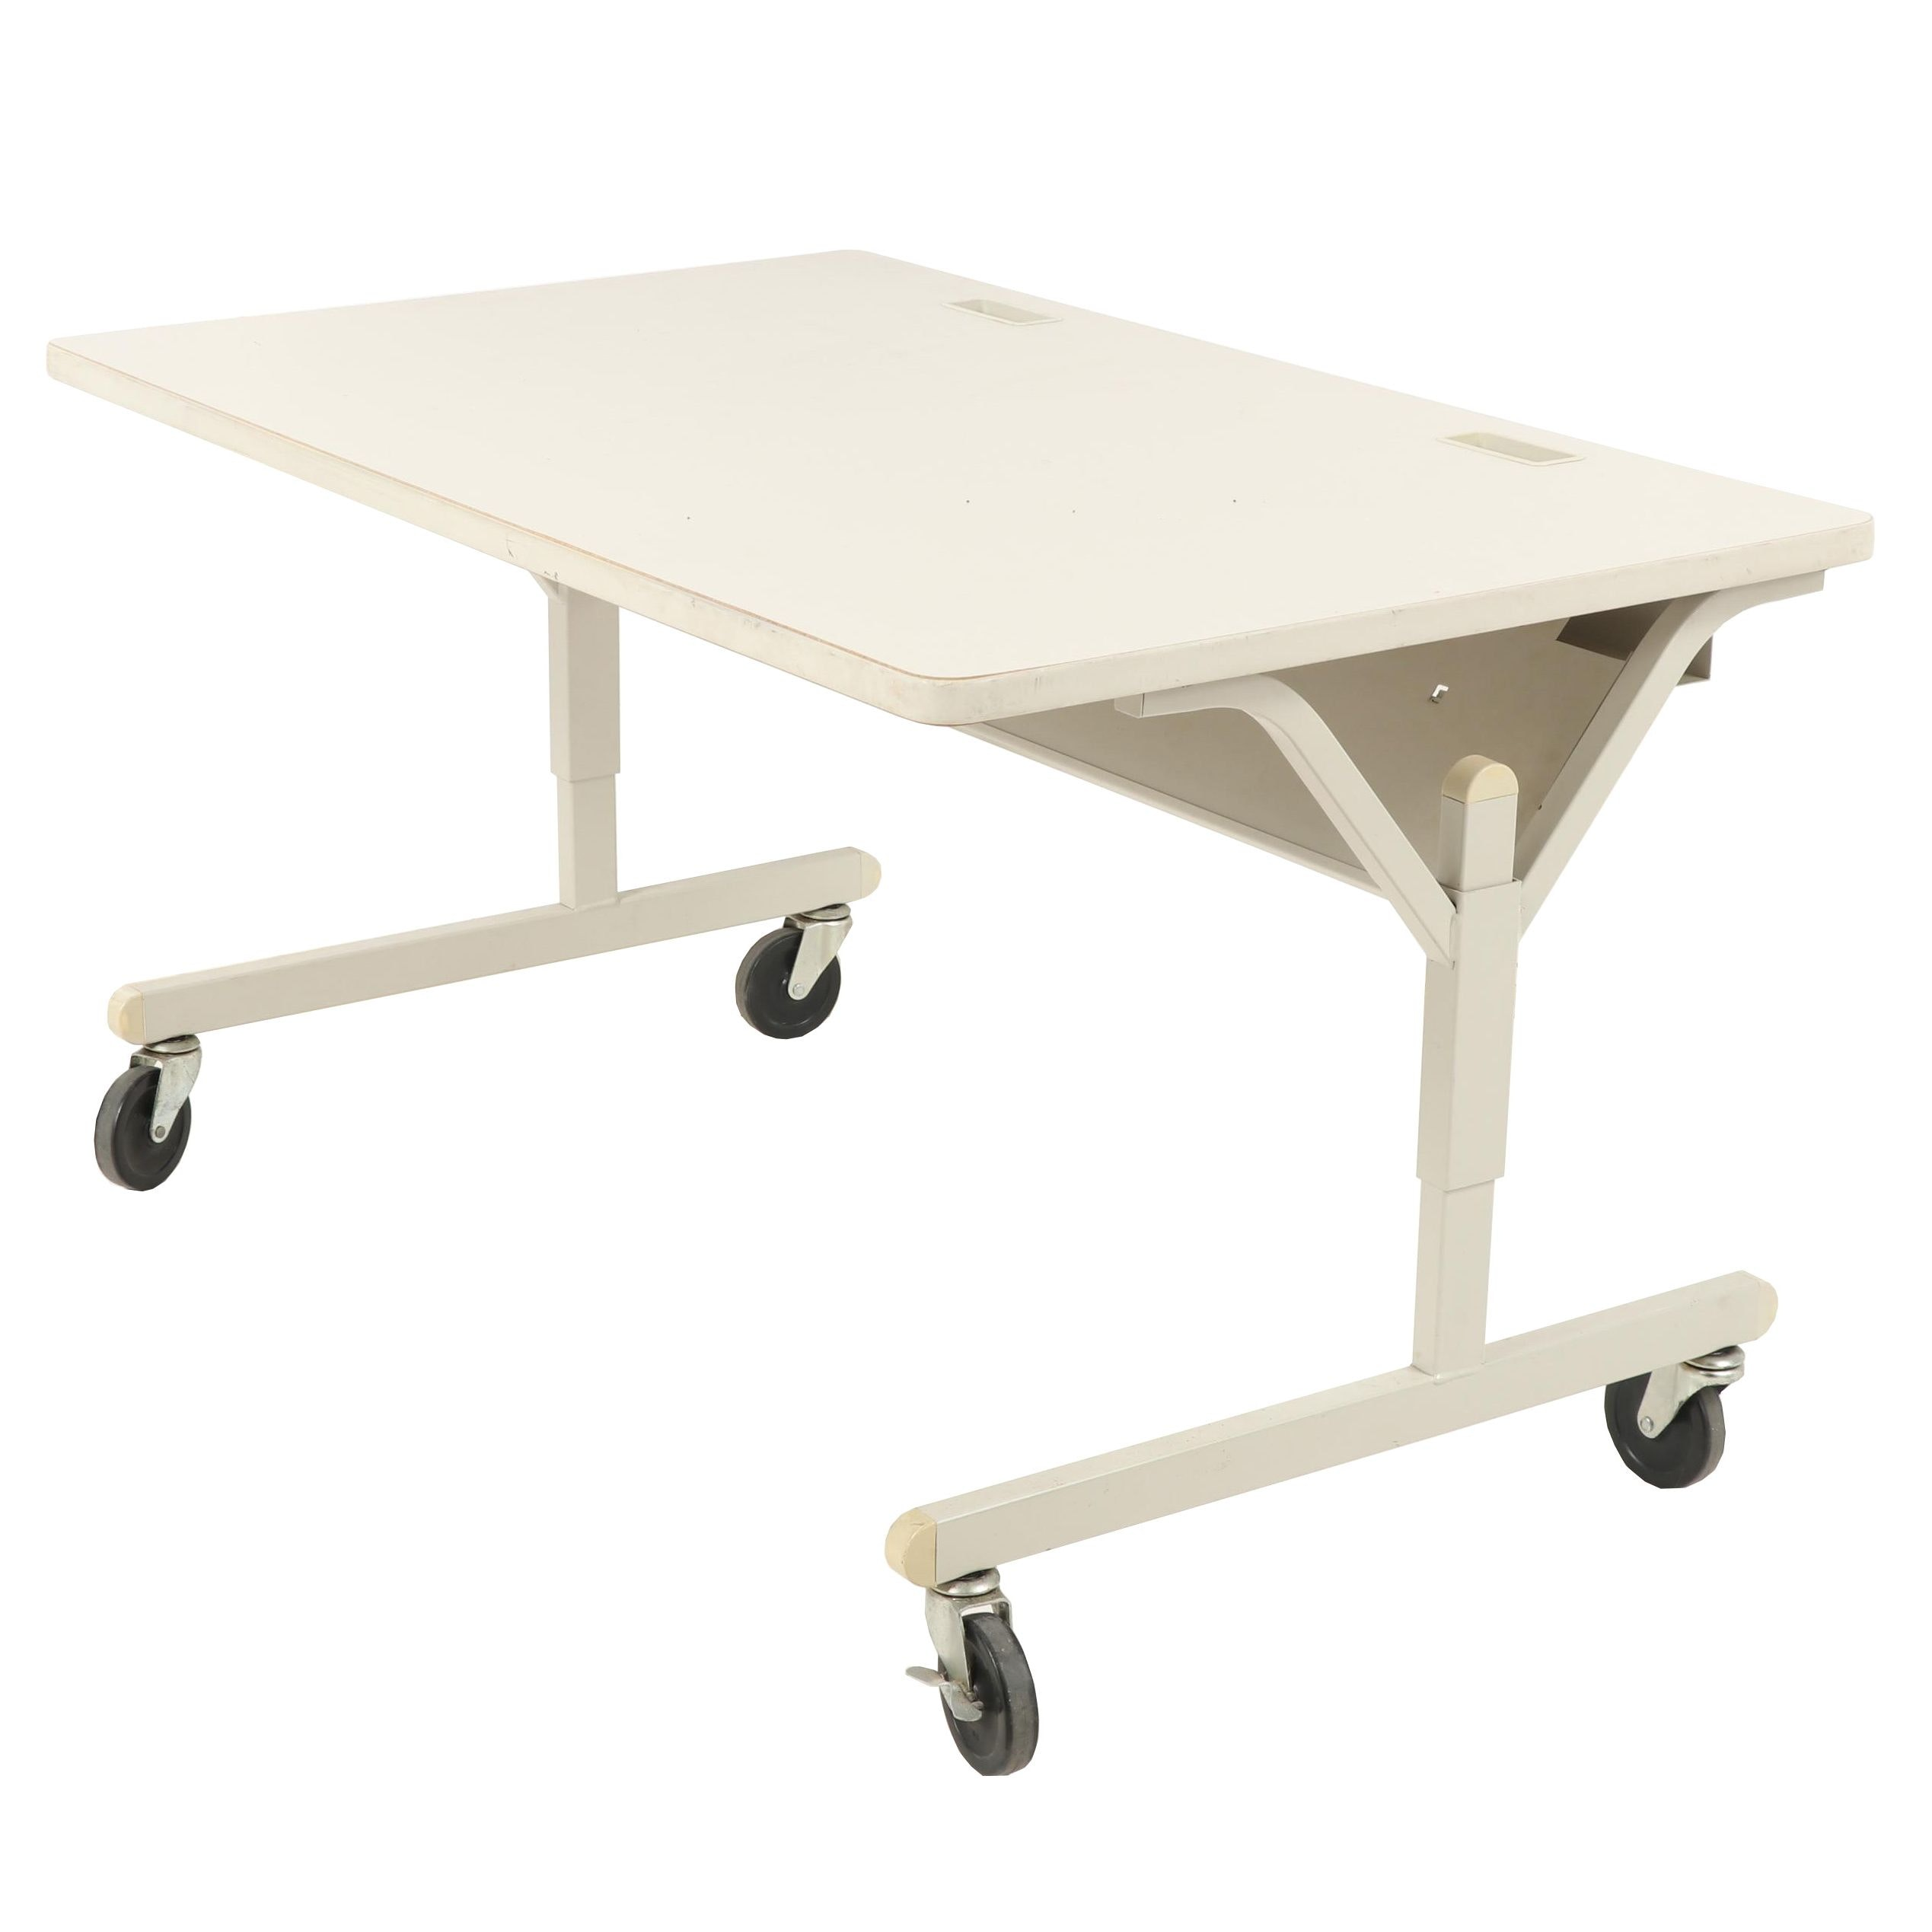 Contemporary Commercial Laminate Desk with on a Steel Base with Casters